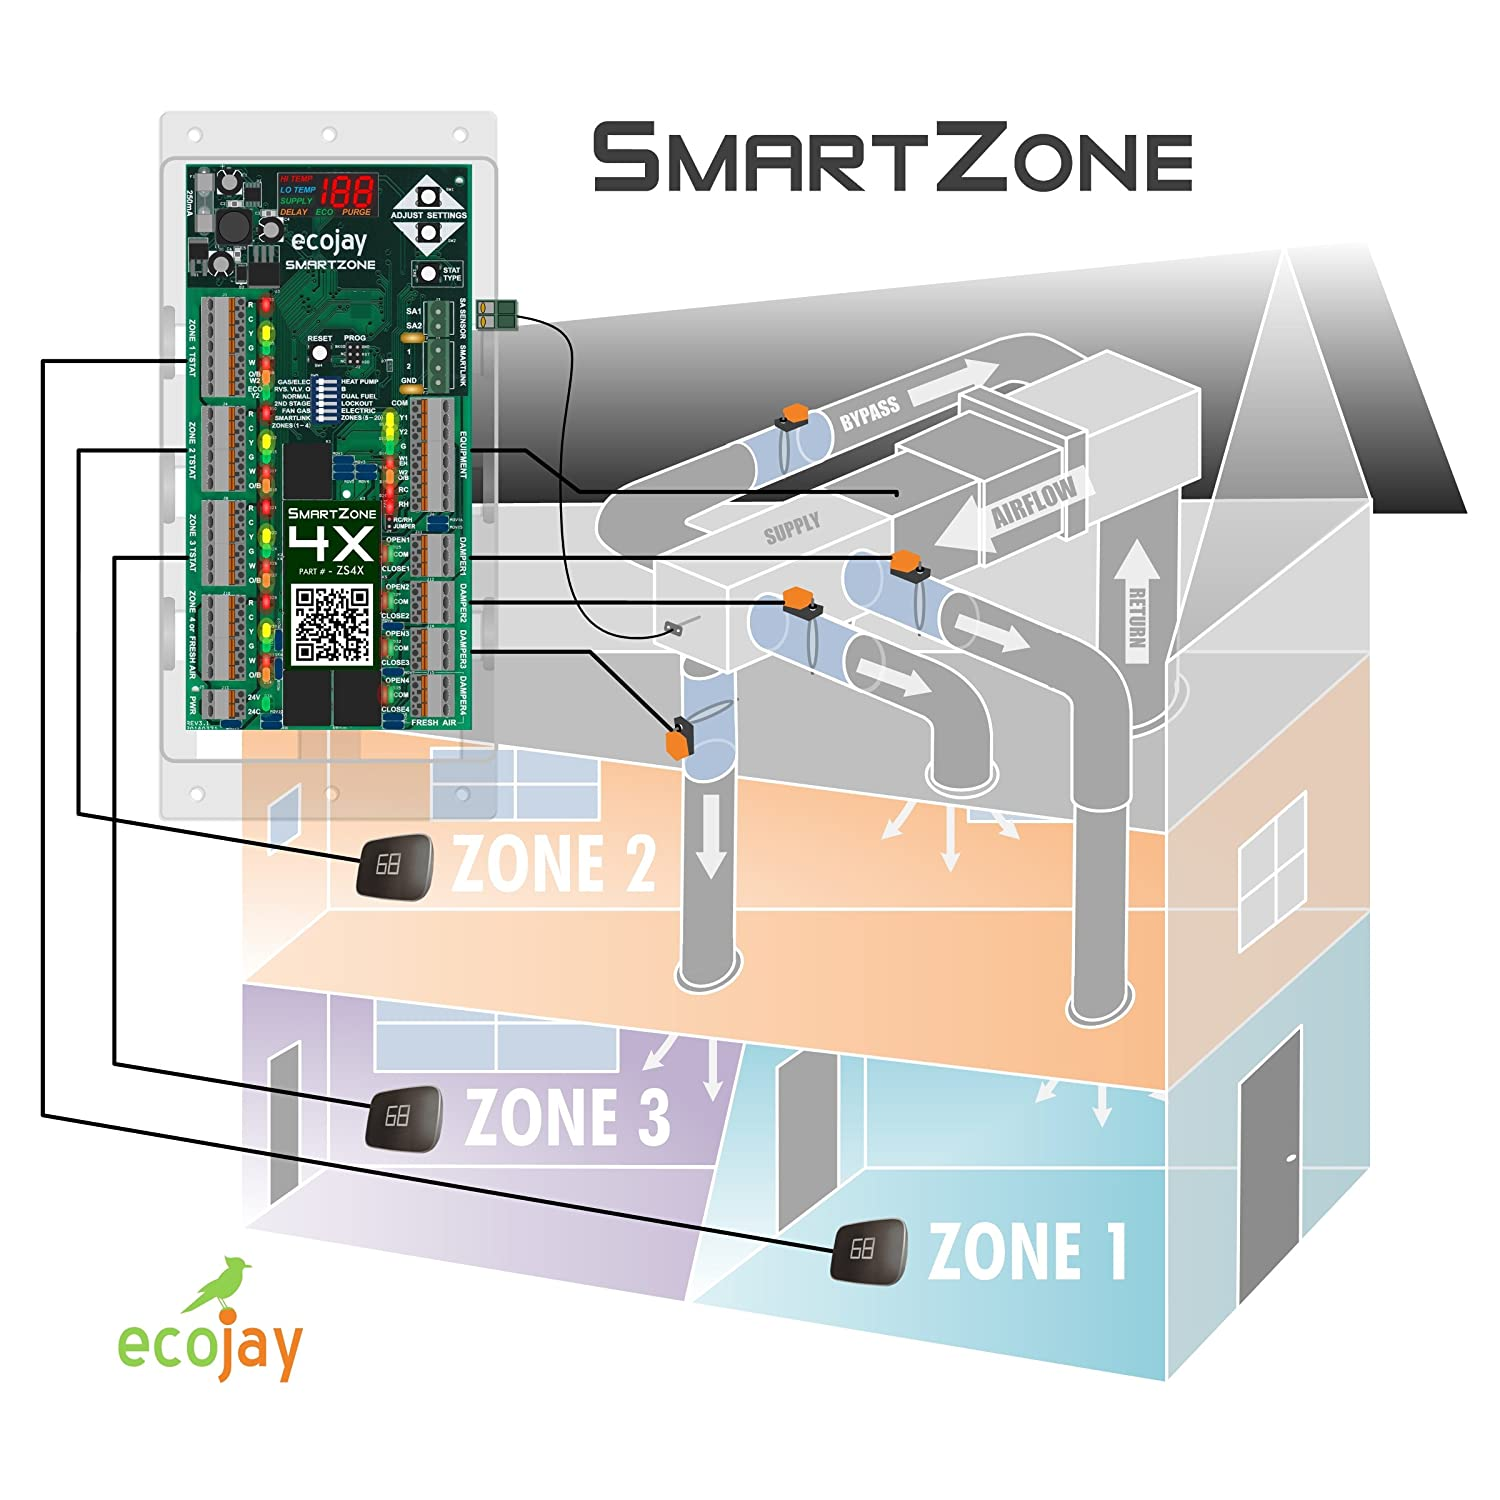 SmartZone-4X Control - 4 zone controller KIT w/Temp sensor - Universal  Replacement for honeywell zoning panel truezone hz432 & more - - Amazon.com